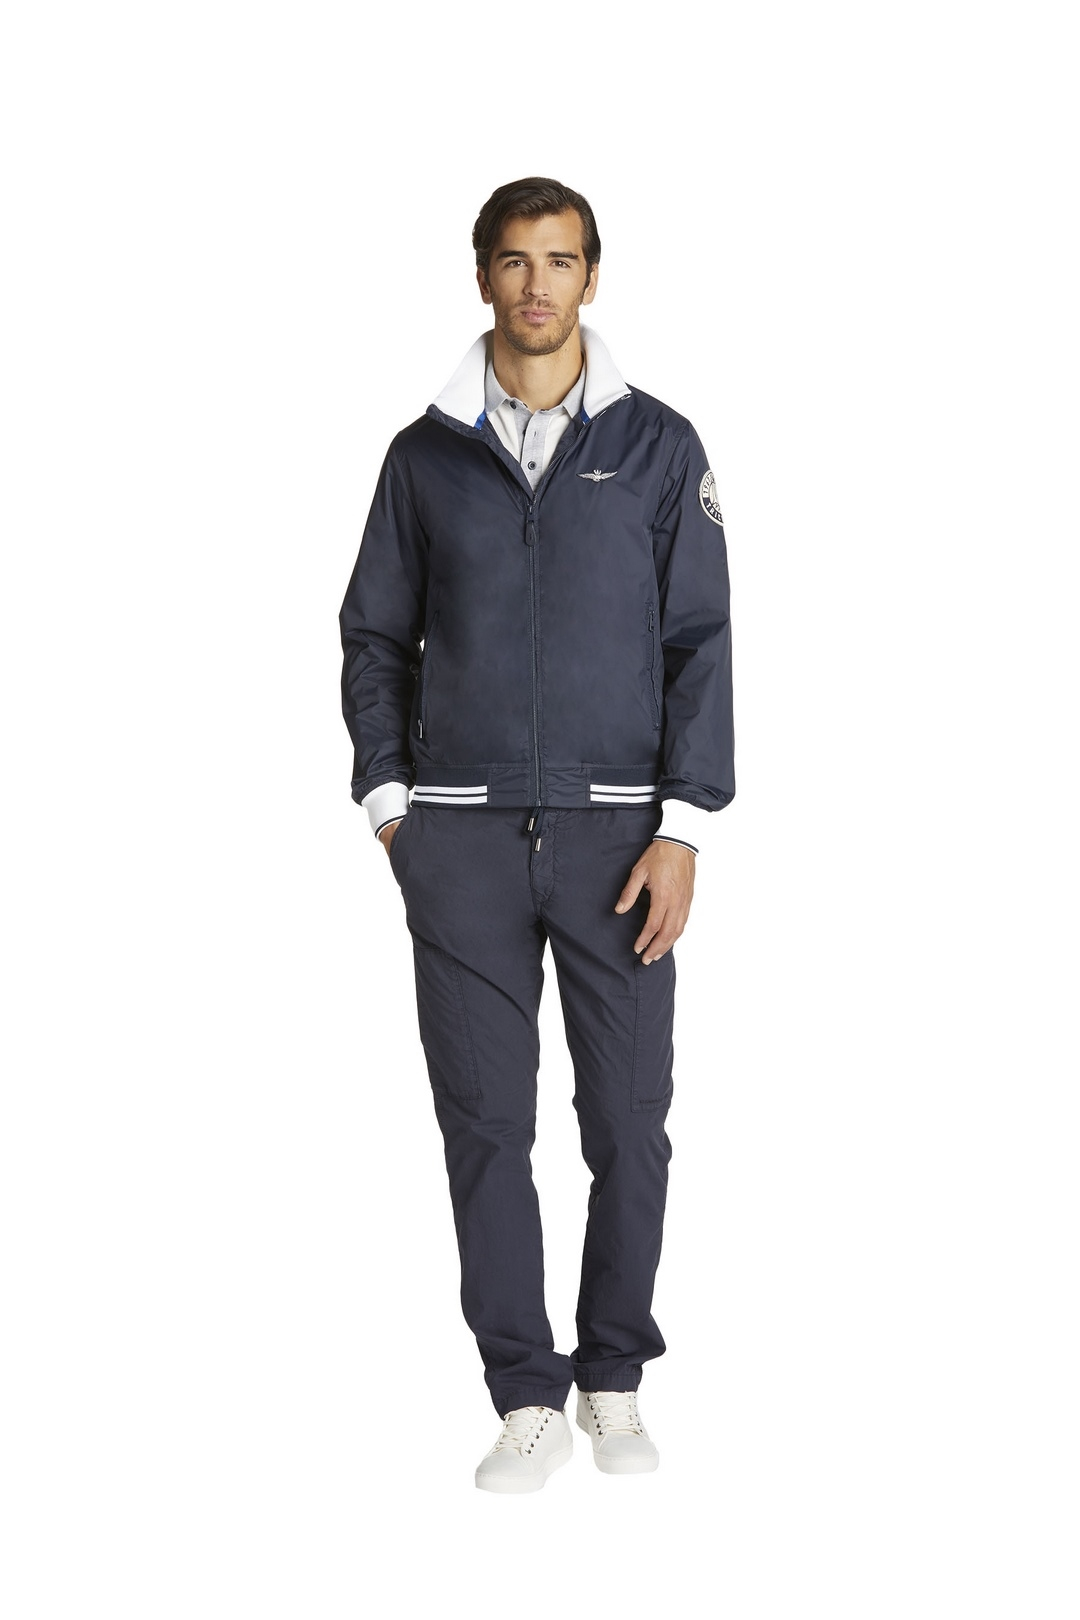 Frecce Tricolori Sailor jacket 4